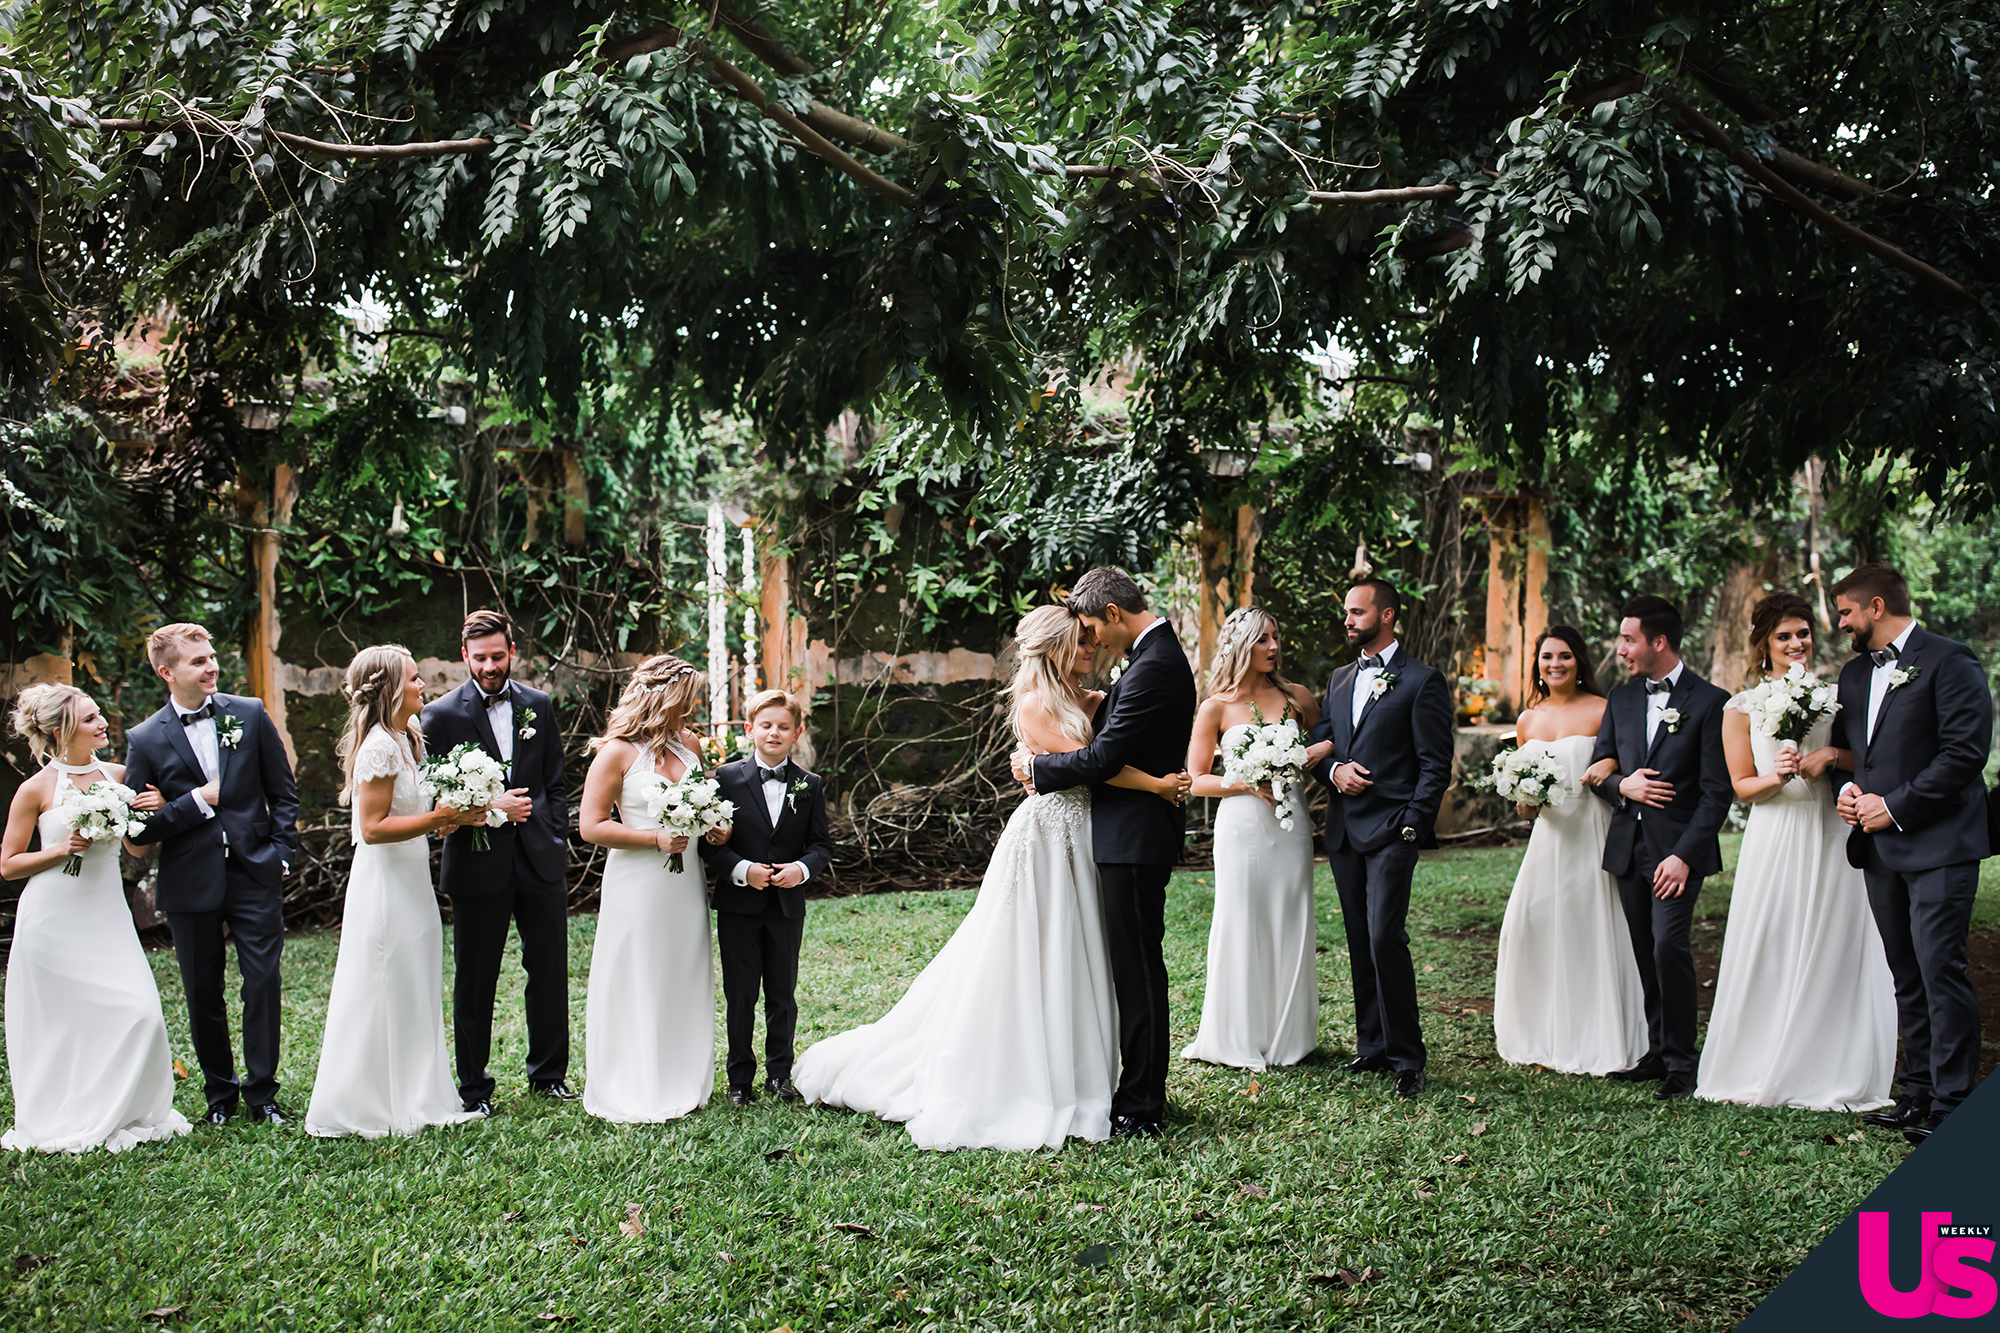 Arie-Luyendyk-Jr. -and-Lauren-Burnham-Wedding - Luyendyk Jr. went with head-to-toe Kenneth Cole , wearing a black three-piece tuxedo, patent black shoes and a white tuxedo shirt.